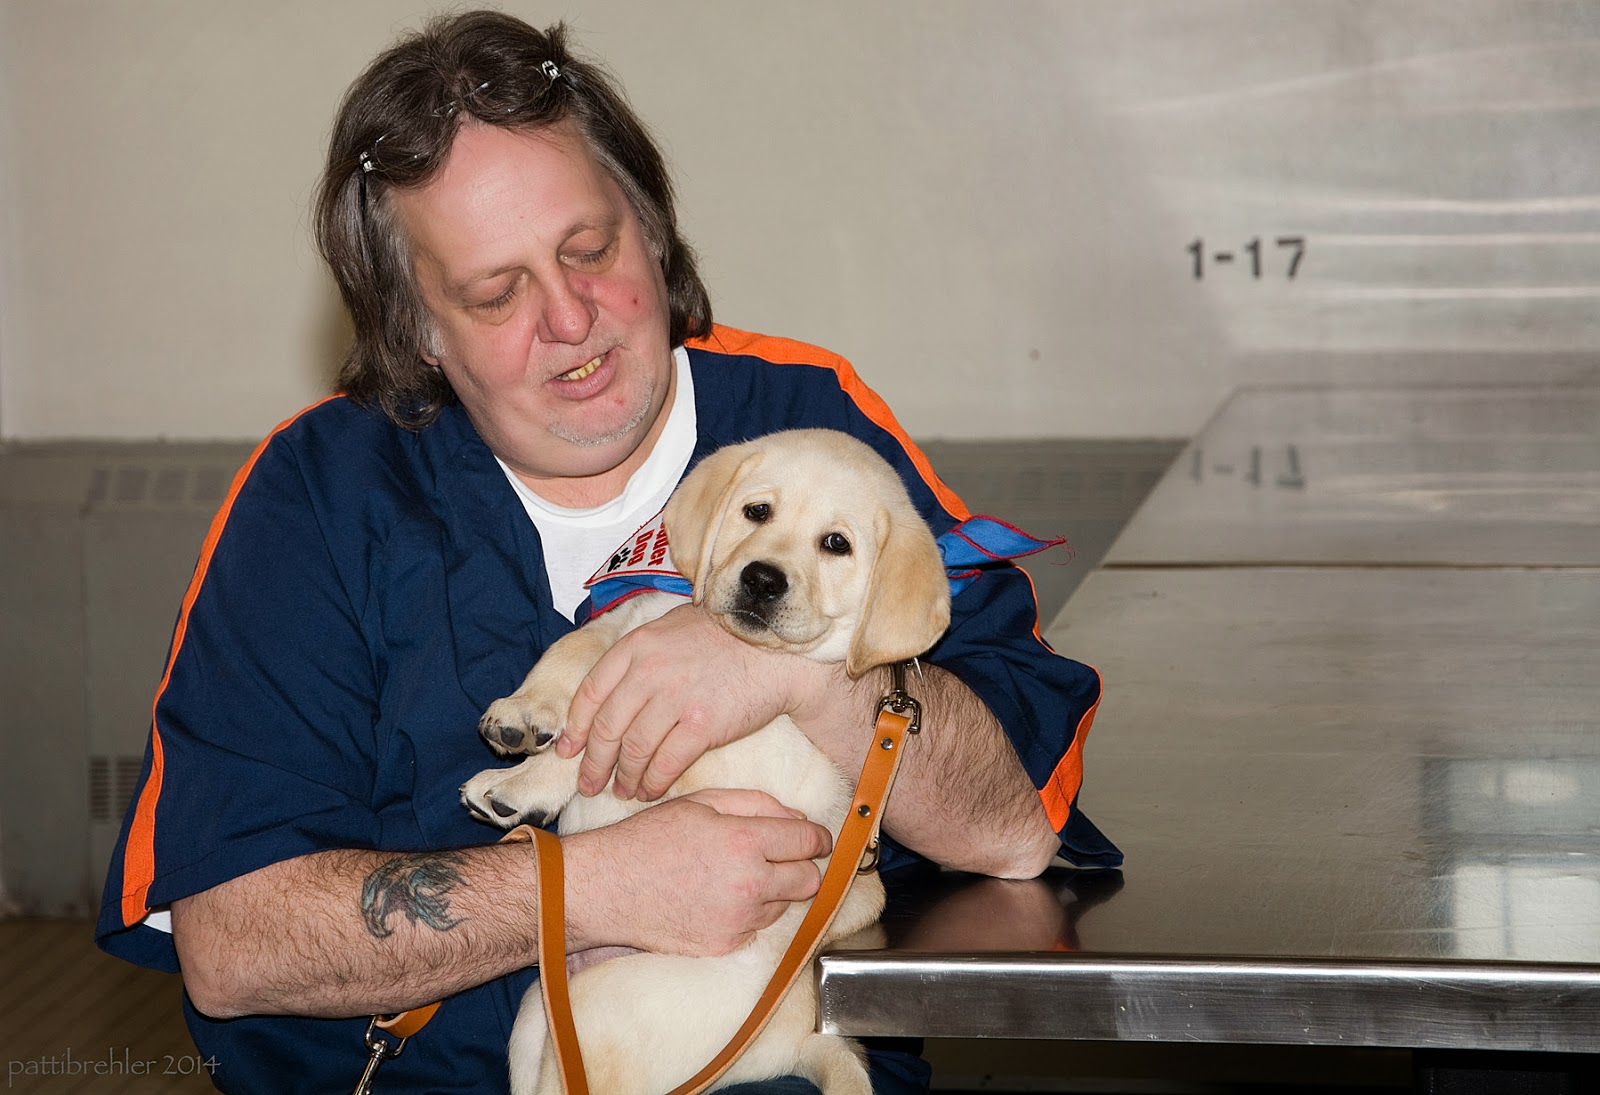 An older man dressed in a short-sleeved blue shirt with orange stripes on the shoulders and arms is holding a yellow lab puppy in his lap with both arms wrapped around it. His left elbow is resting on a shiny steel talbe. He has longish hair and a pair of glasses are up on the top of his head. He has a tattoo on the forearm of his right arm.